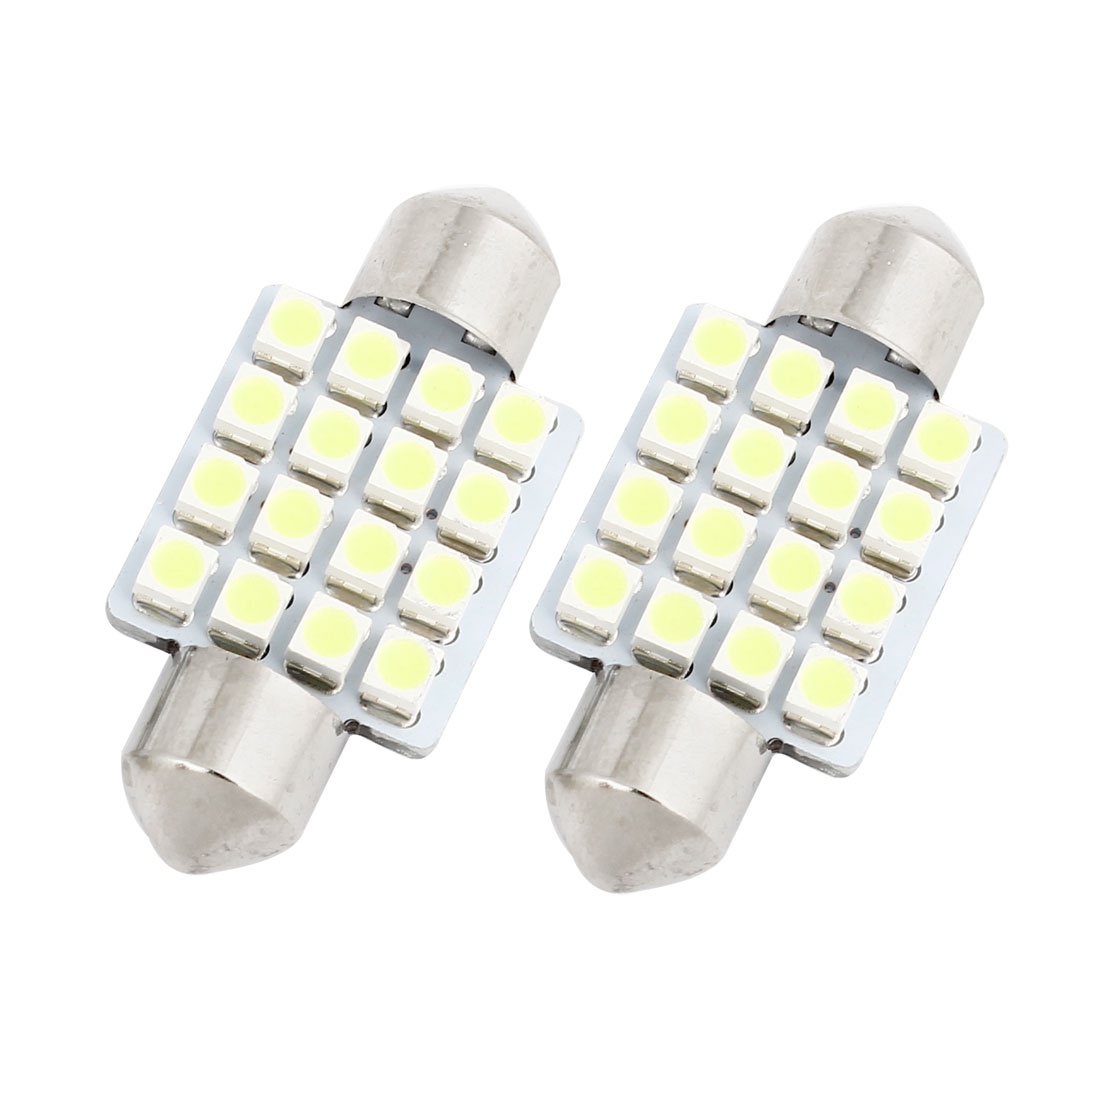 "2 Pcs 36mm 1.5"" 16-SMD 1210 White LED Festoon Dome Light DE3423 6418 Internal"